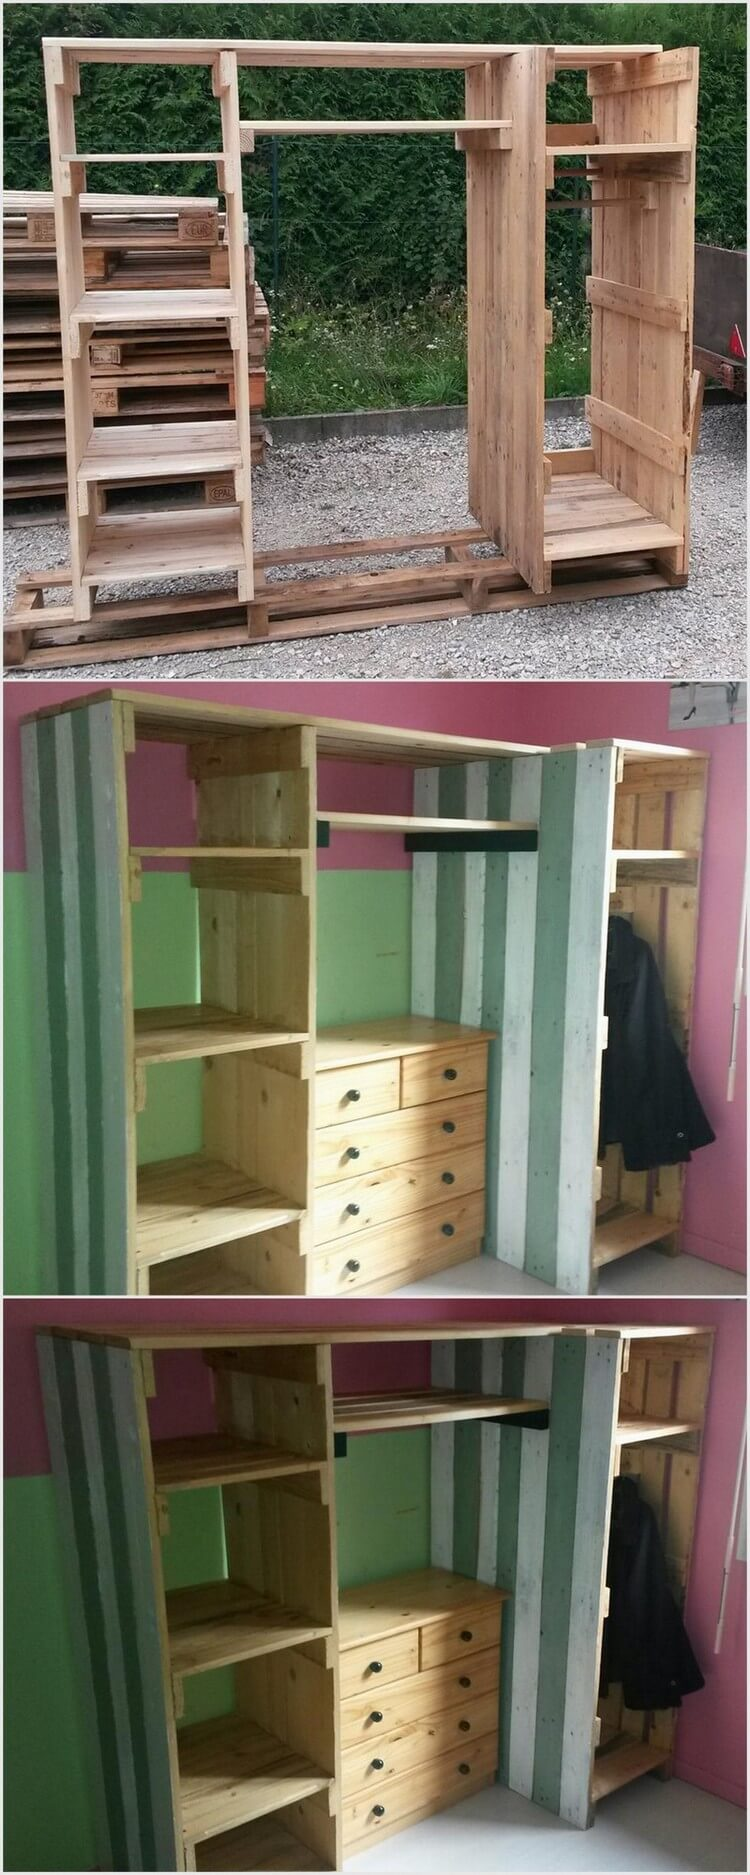 Top Best Recycling Ideas with Used Wood Pallets  Pallet